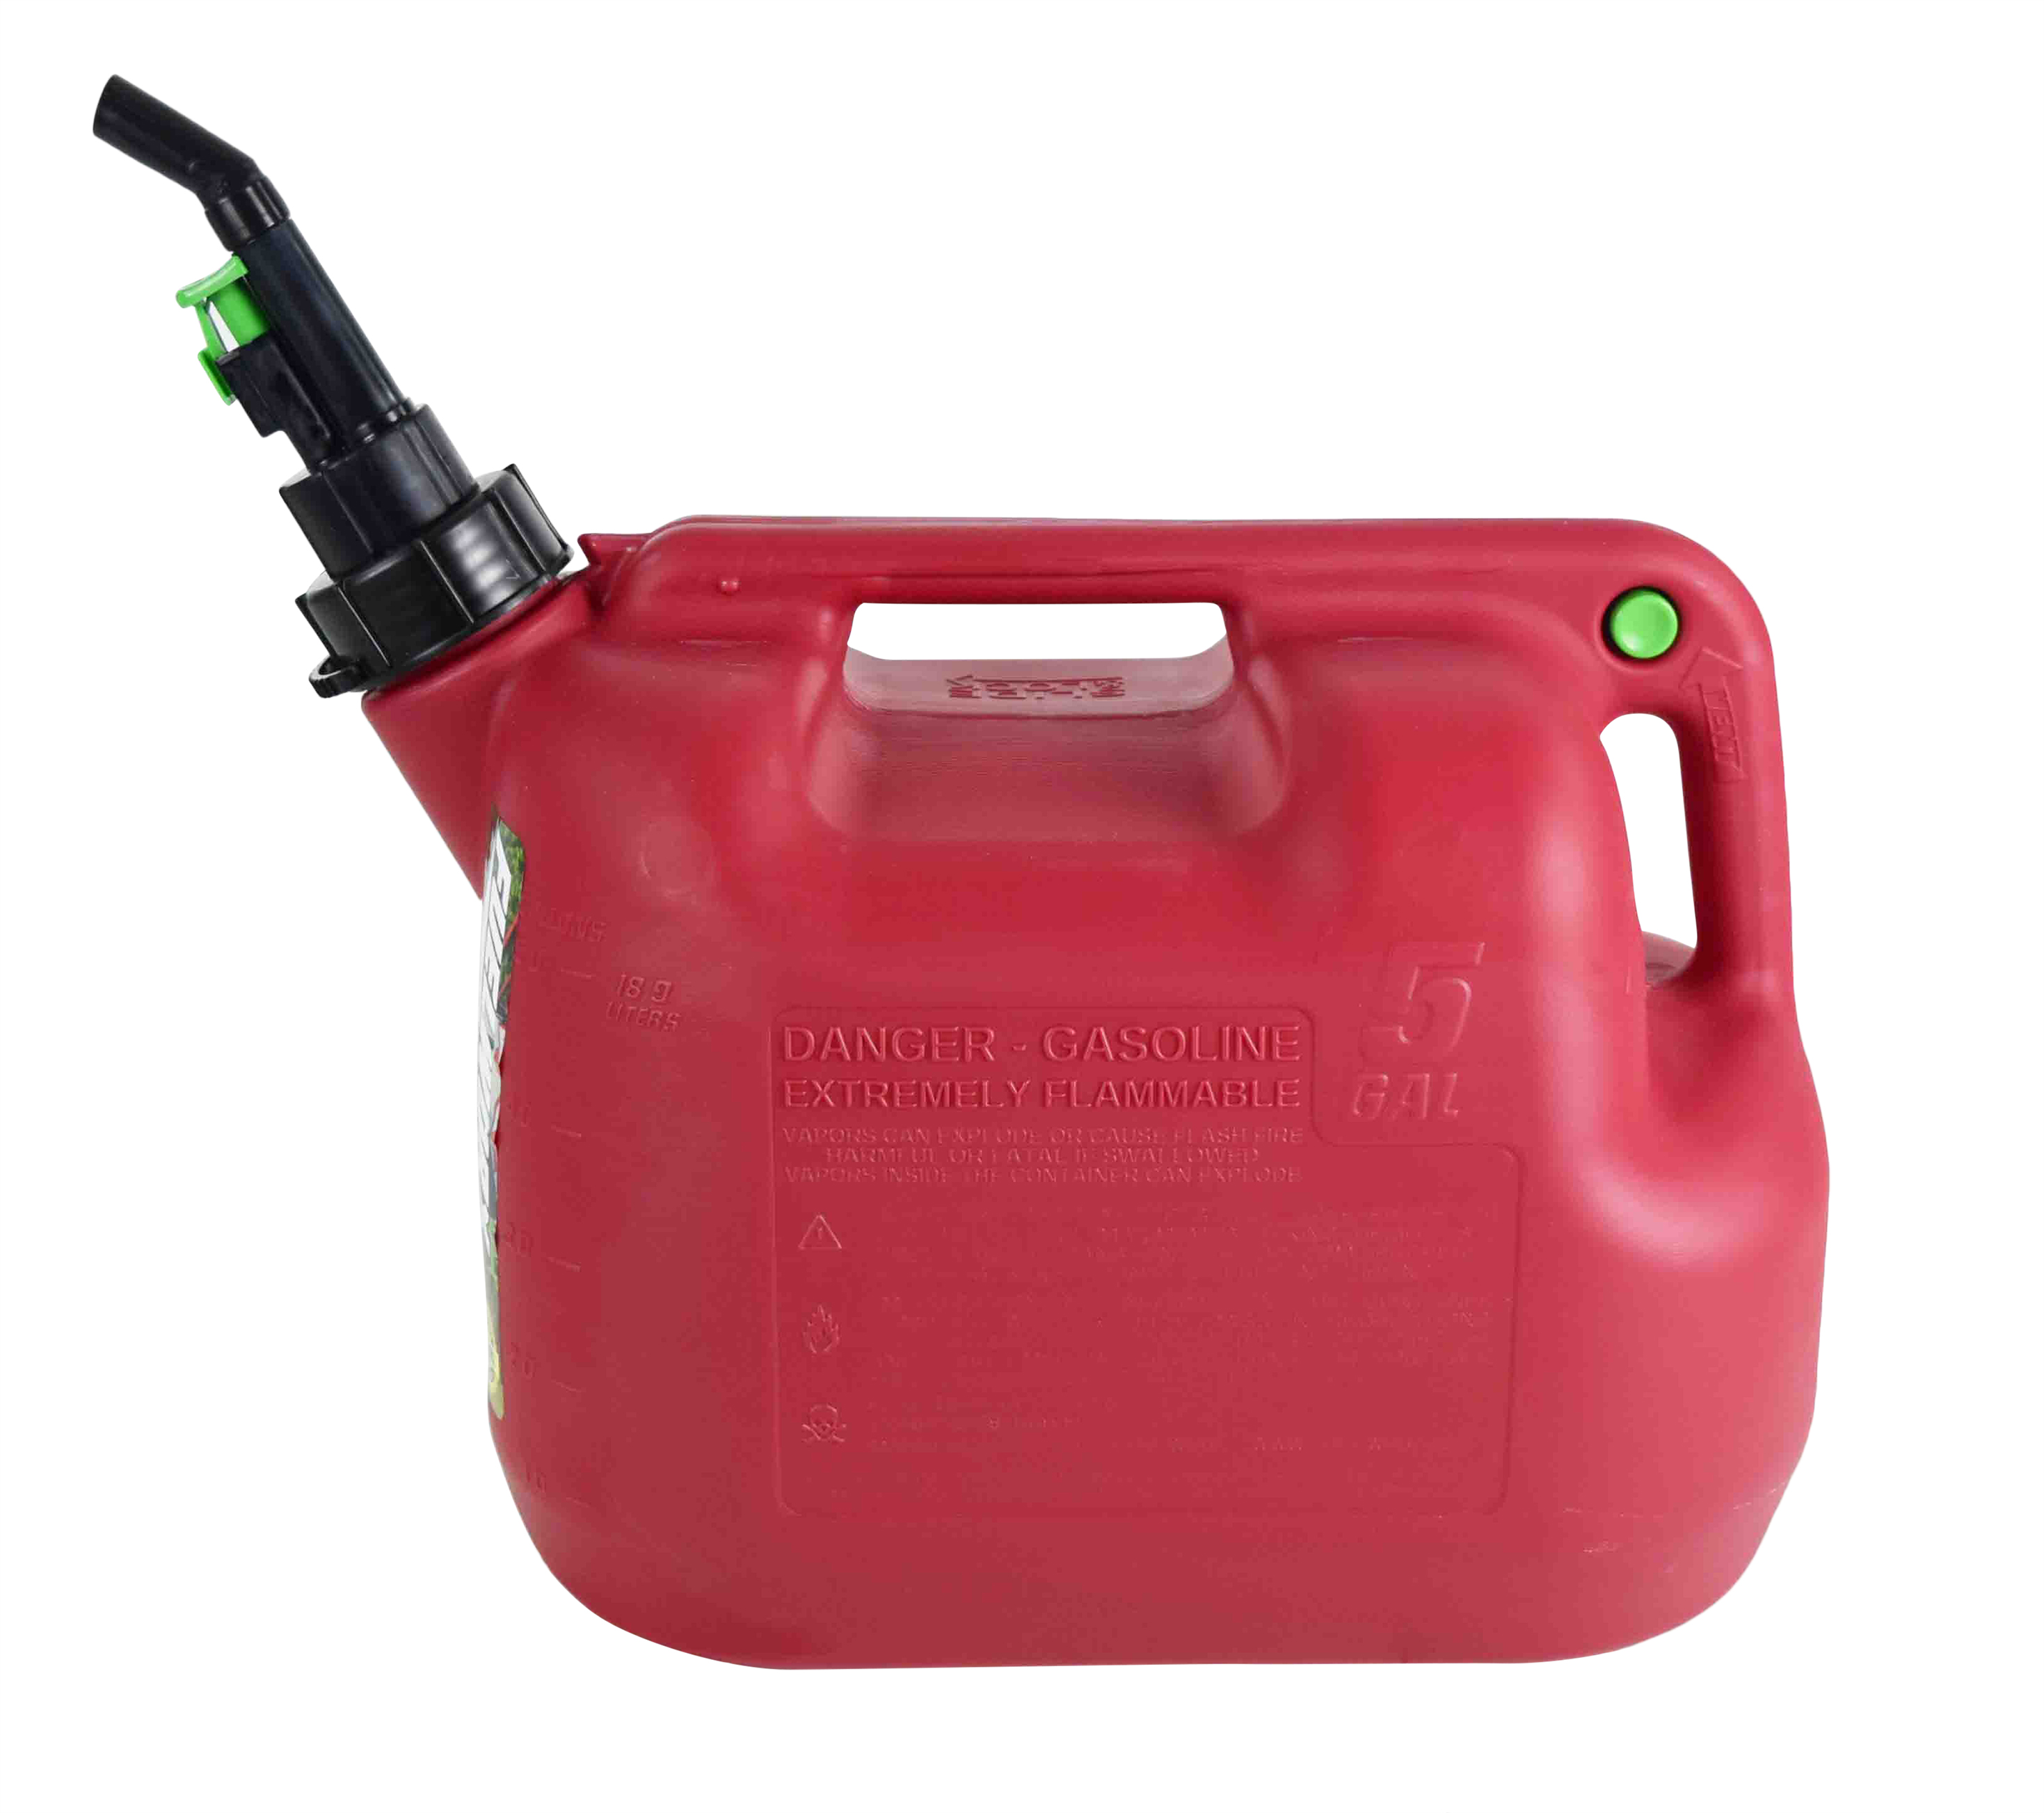 Fuelworx-Red-5-Gallon-Stackable-Fast-Pour-Gas-Fuel-Can-CARB-Compliant-Made-in-The-USA-5-Gallon-Gas-Can-2-Pack-image-5